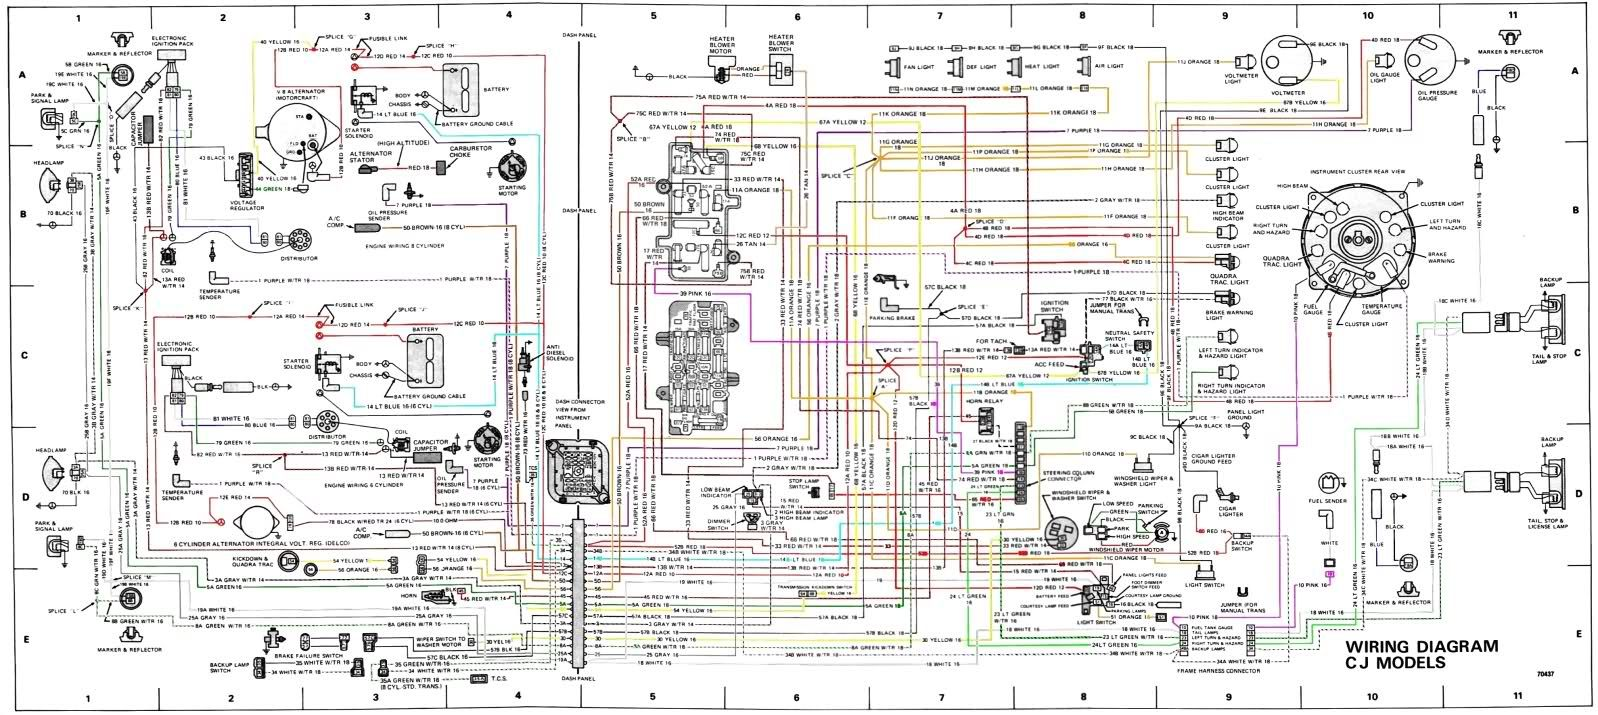 jeep cj7 wiring diagram wiring diagram m6jeep cj7 wiring diagram unlimited wiring diagram jeep cj7 fuel [ 1598 x 715 Pixel ]